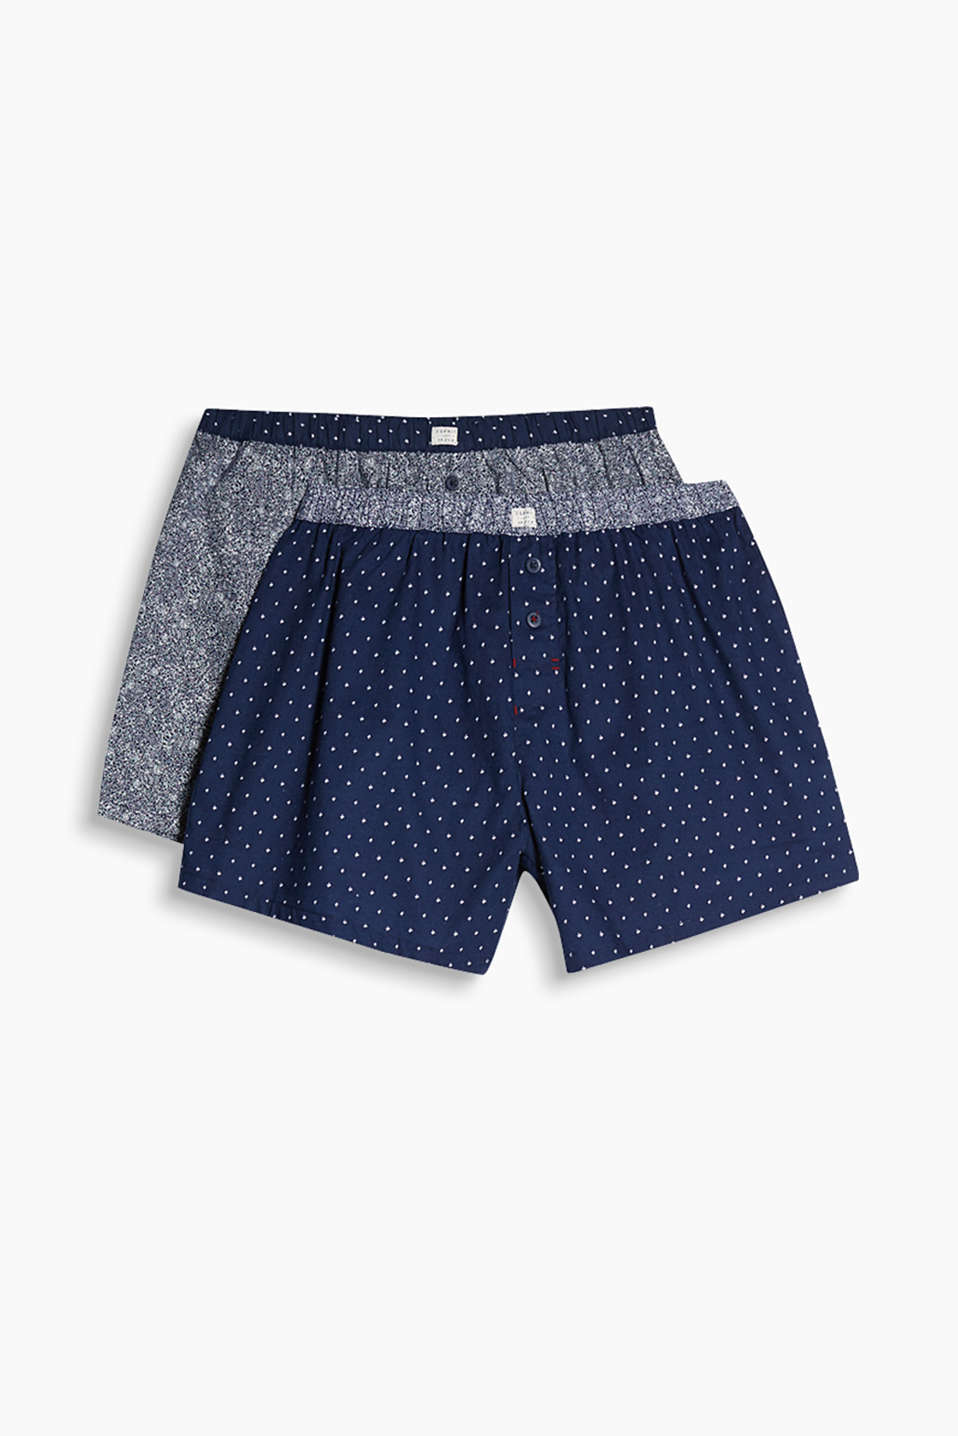 In a practical double pack: these cotton shorts with different mini print are all about pattern!